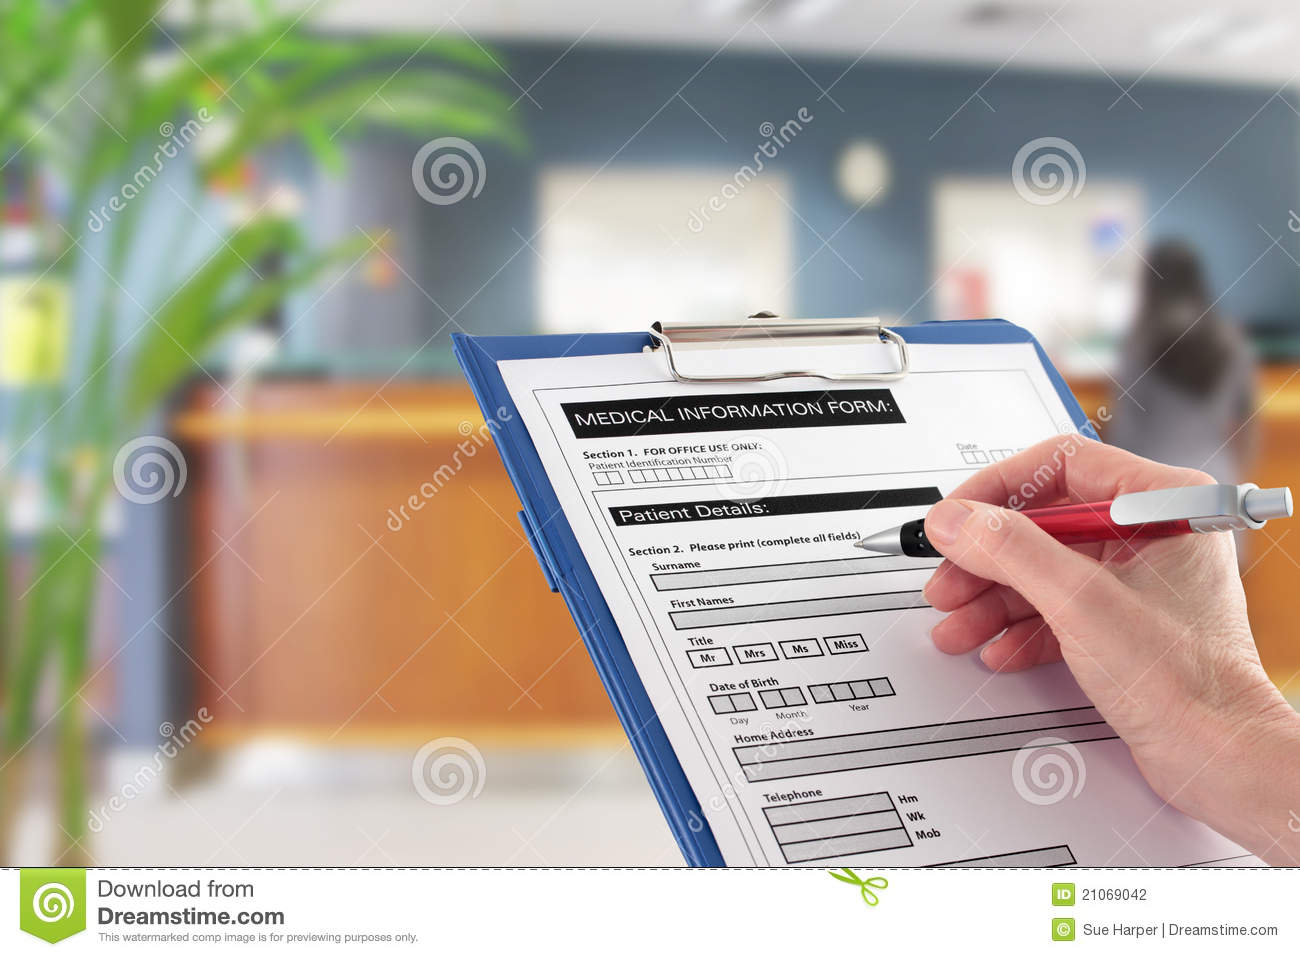 Hand Writing on Medical Details Form in Hospital